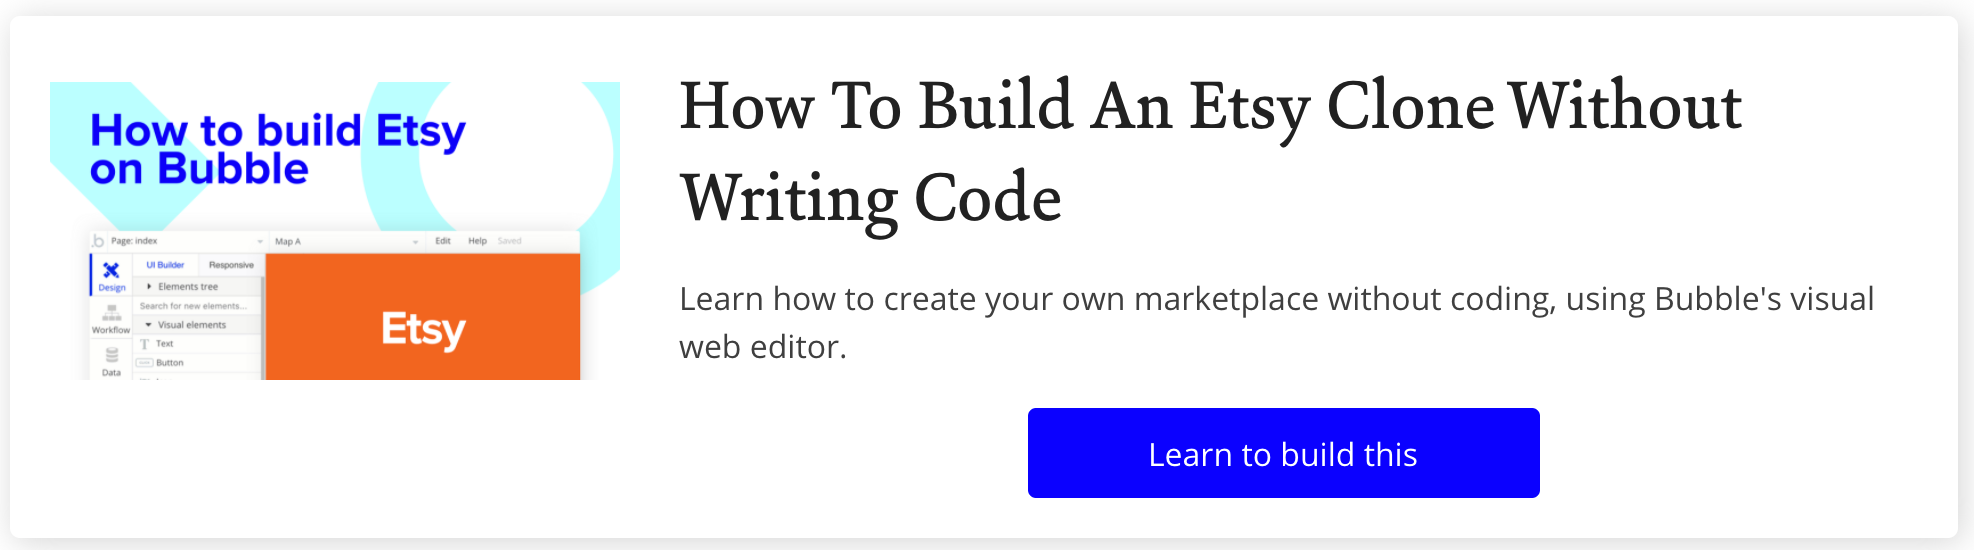 How To Build Etsy Clone in Bubble With No Code